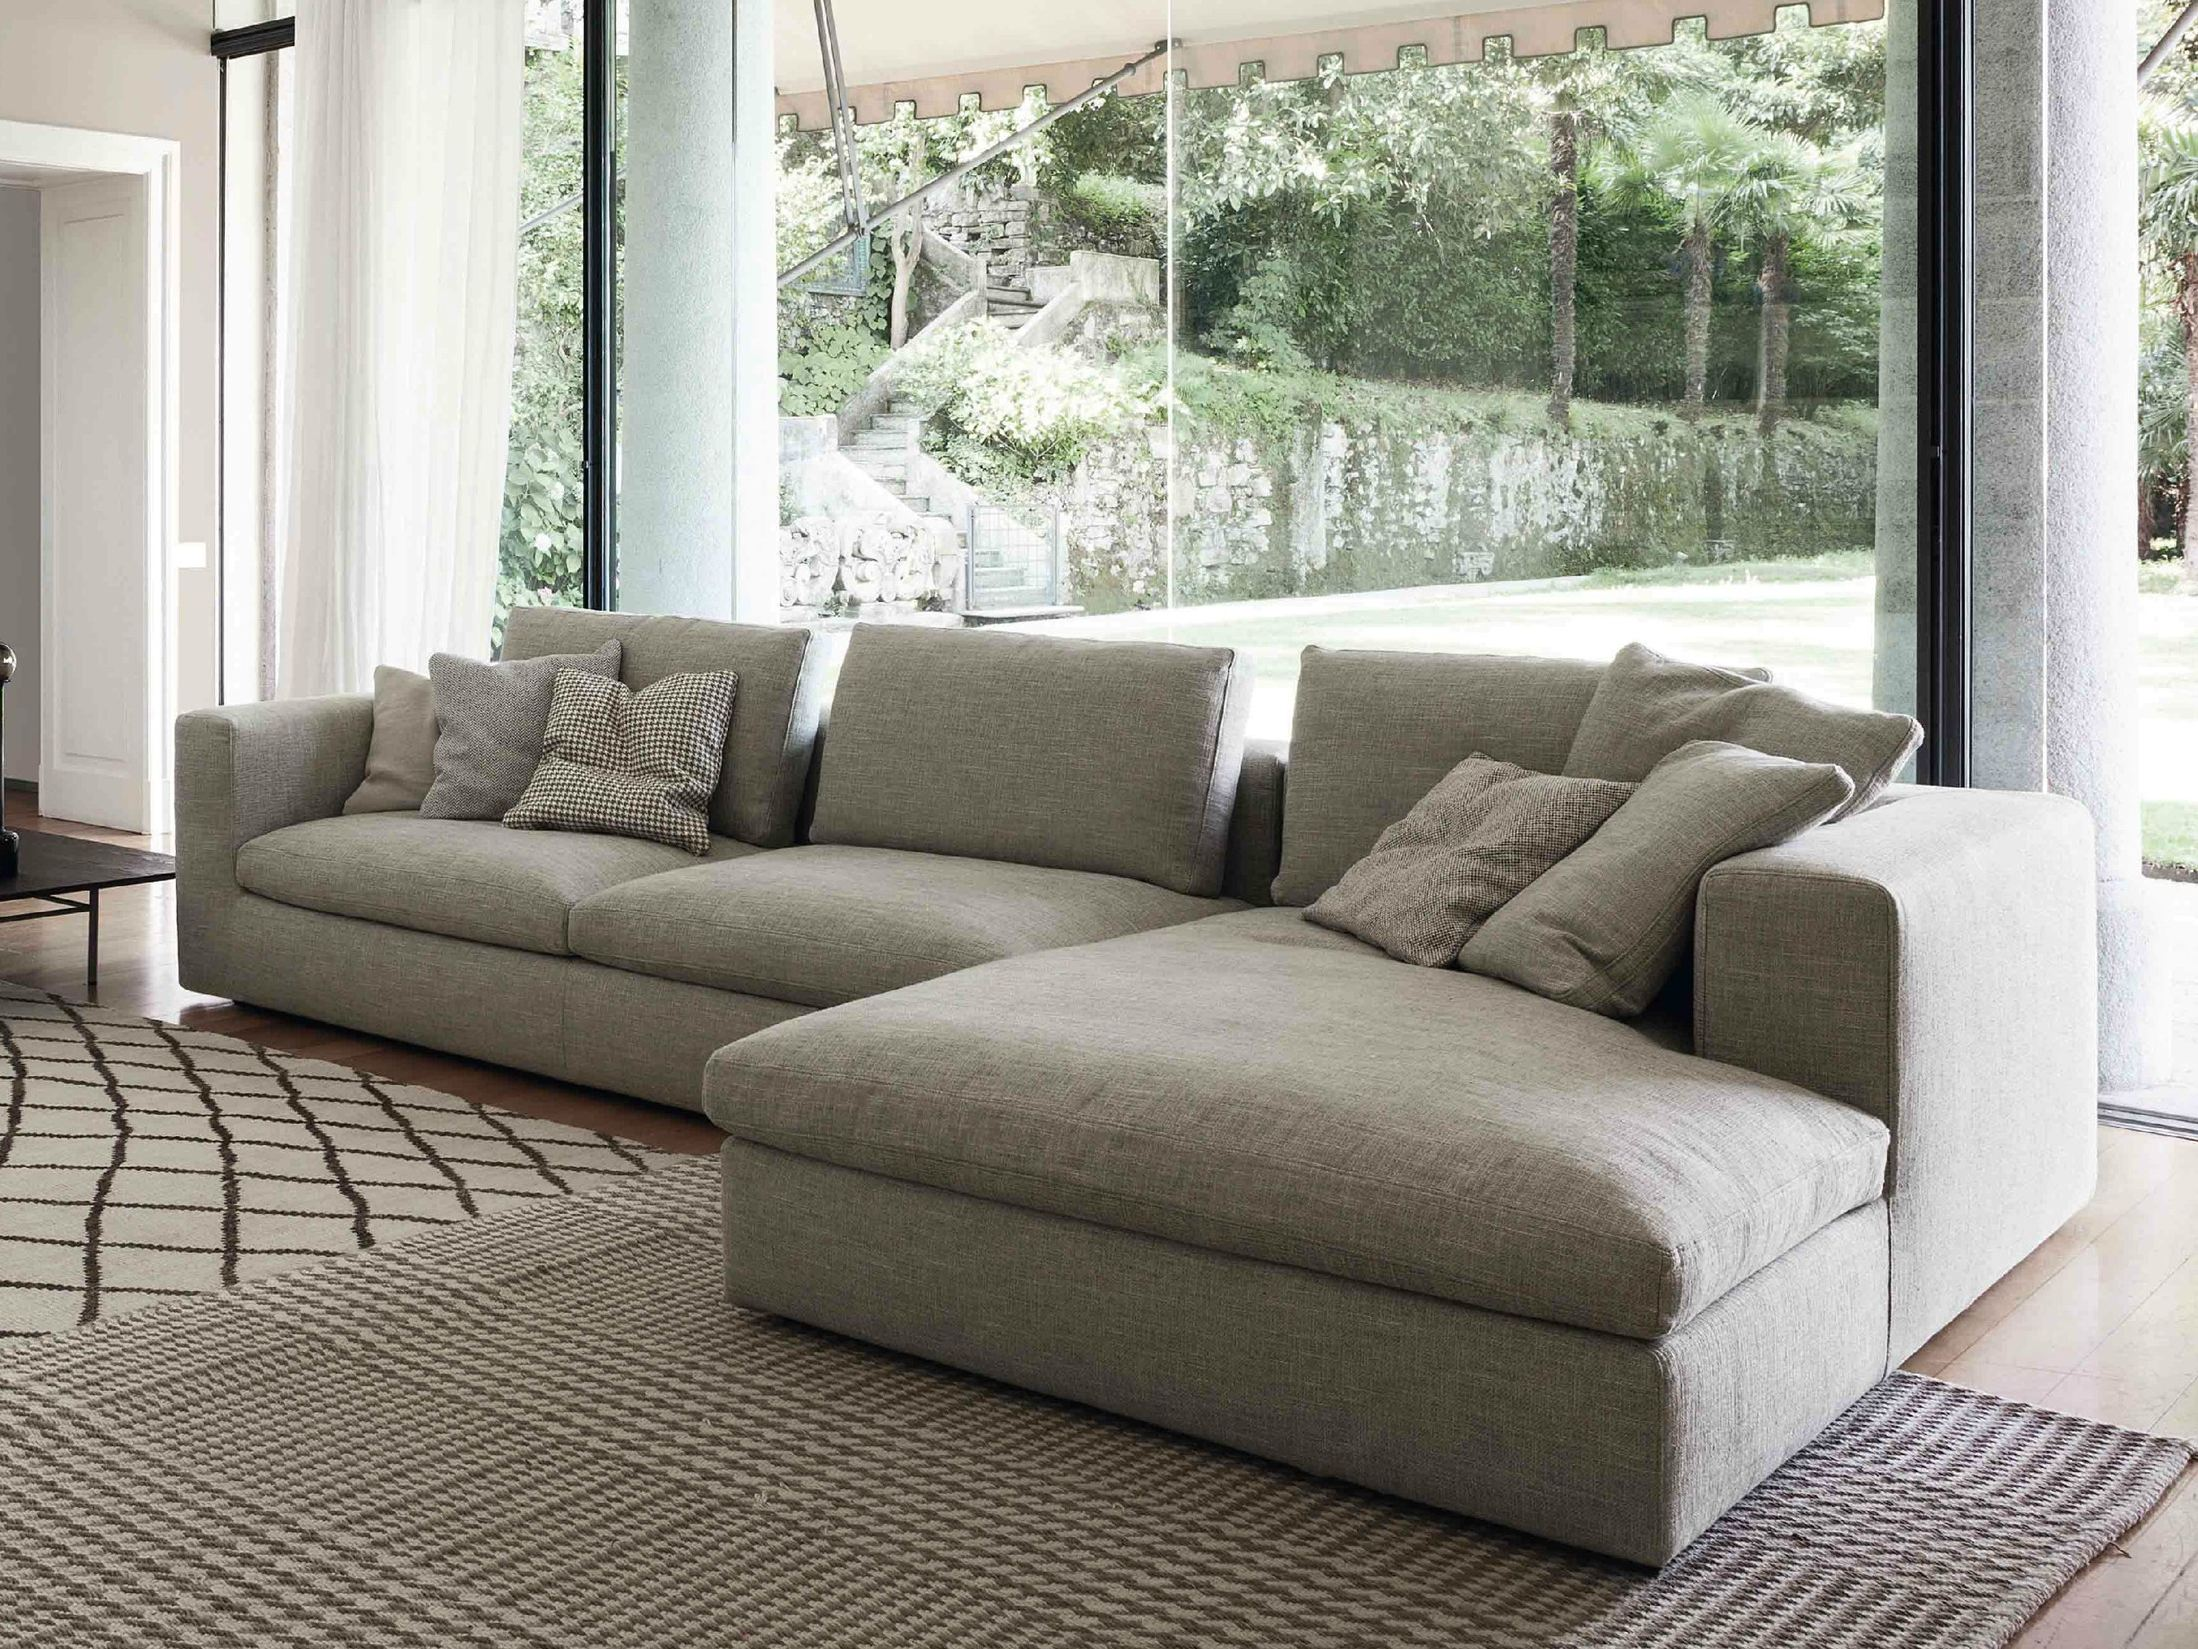 Land sofa with chaise longue by bonaldo - Canape chesterfield convertible ...